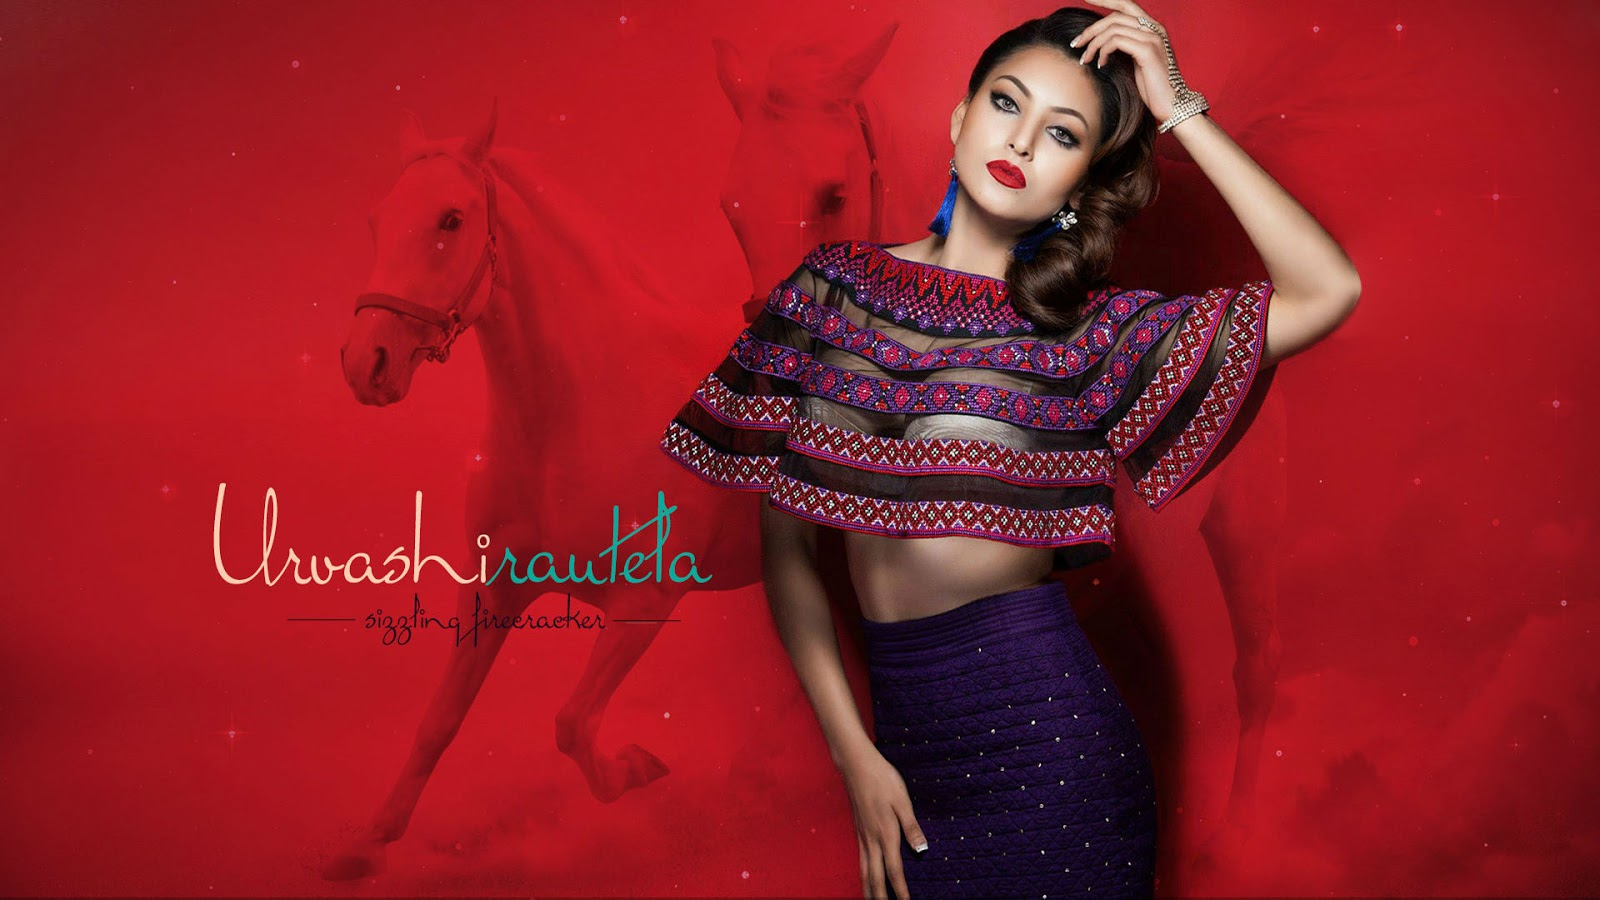 Punjabi Beautiful Girl Wallpaper Download Urvashi Rautela Hd Wallpapers 1920x1080 Hot Photoshoot